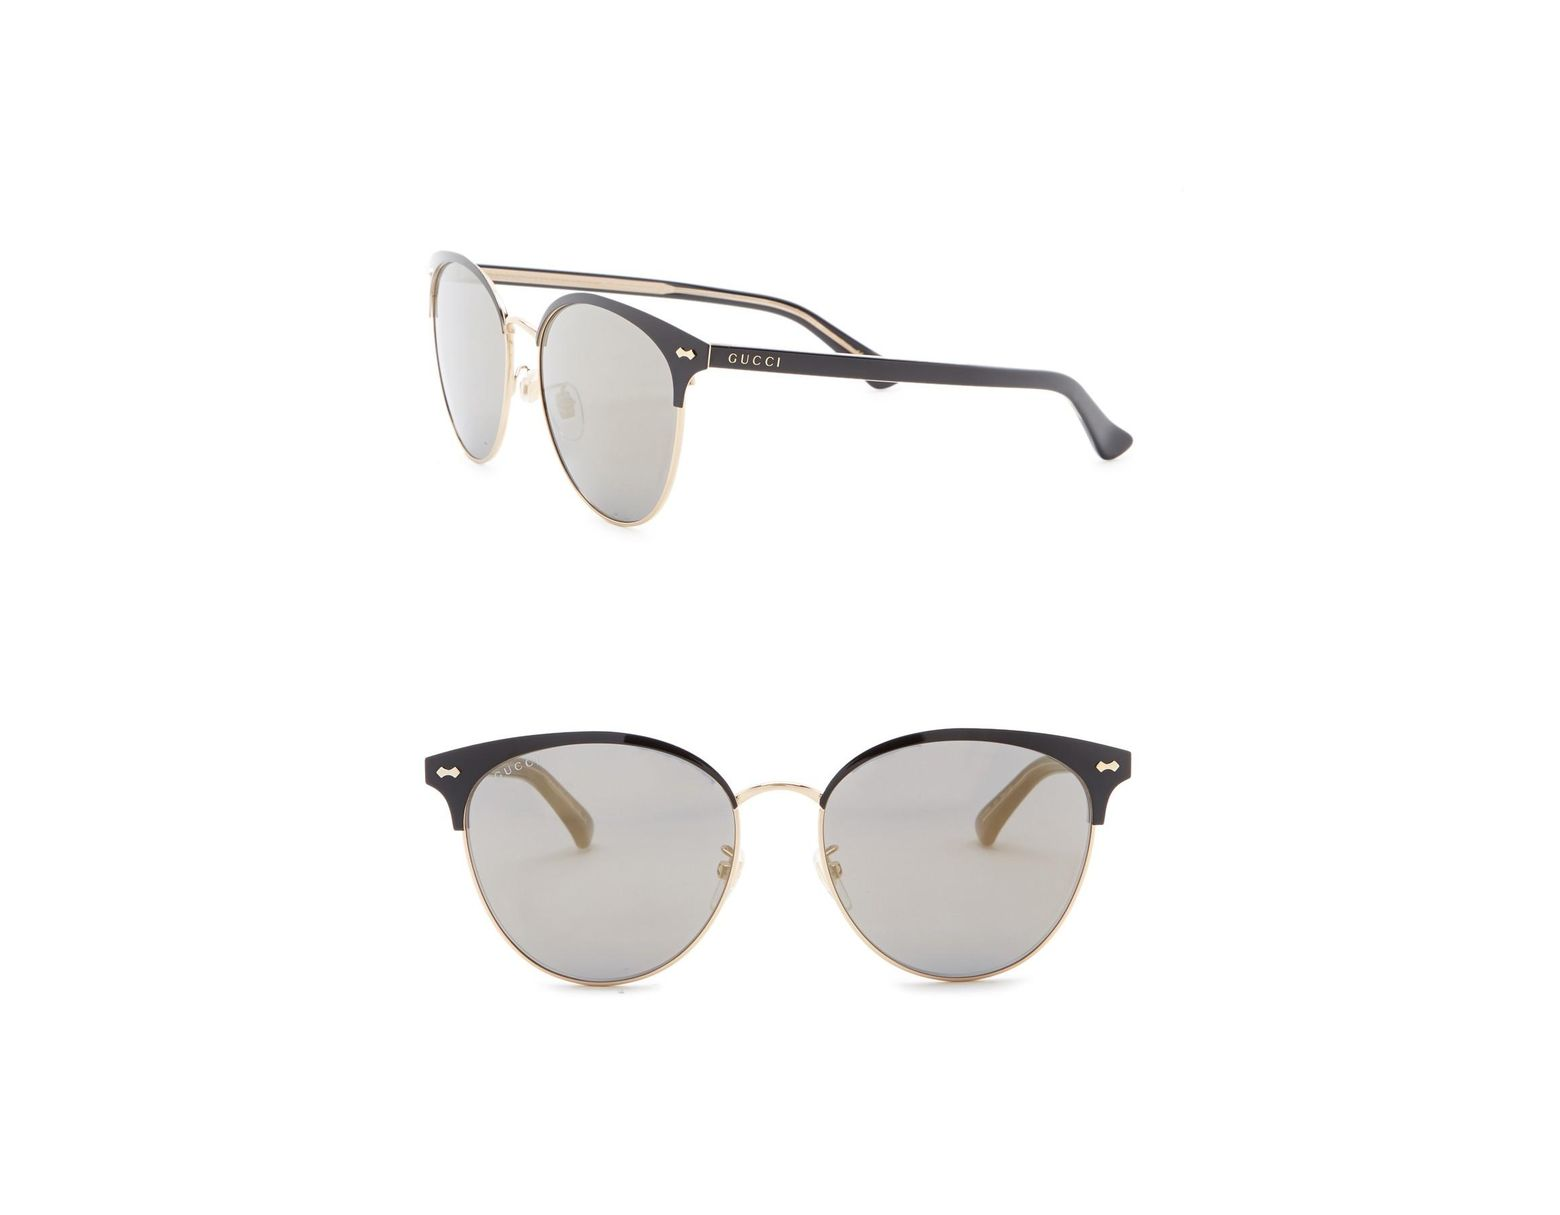 a4514ca14d666 Gucci 58mm Clubmaster Sunglasses in Metallic - Lyst